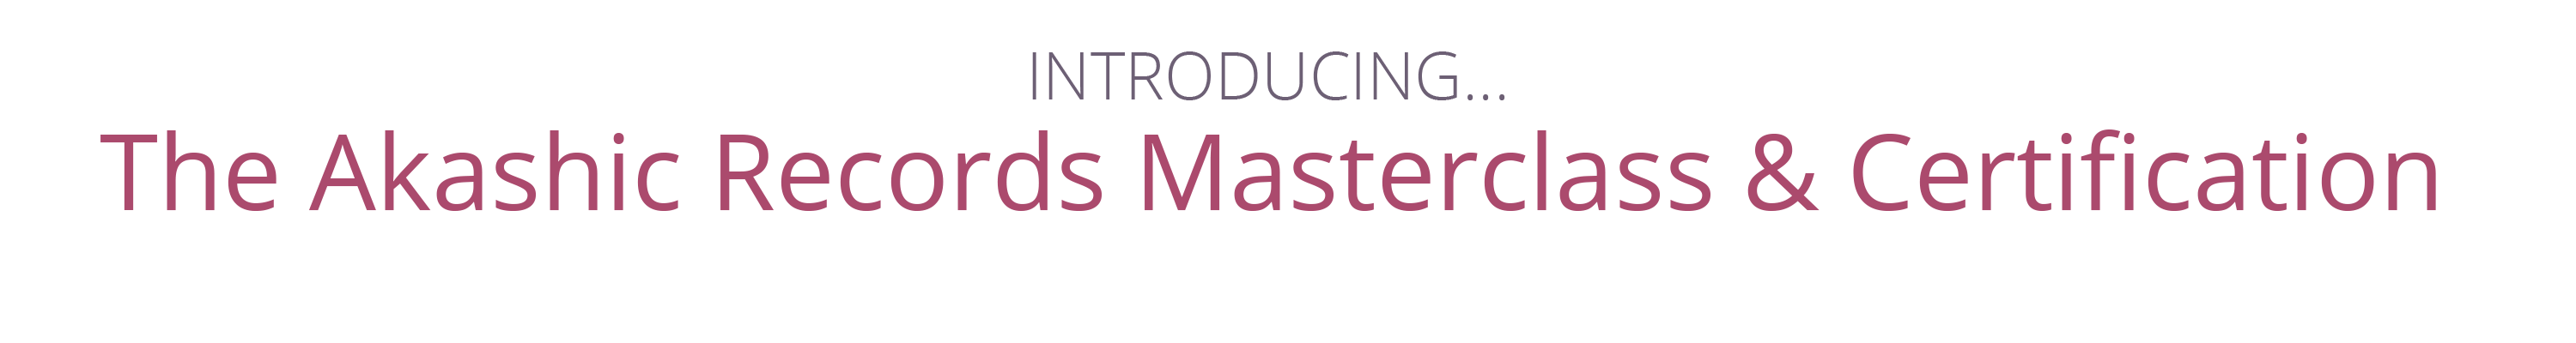 Introducing... The Akashic Records Masterclass & Certification: A 10 month LIVE Immersion Certification Program with Elizabeth